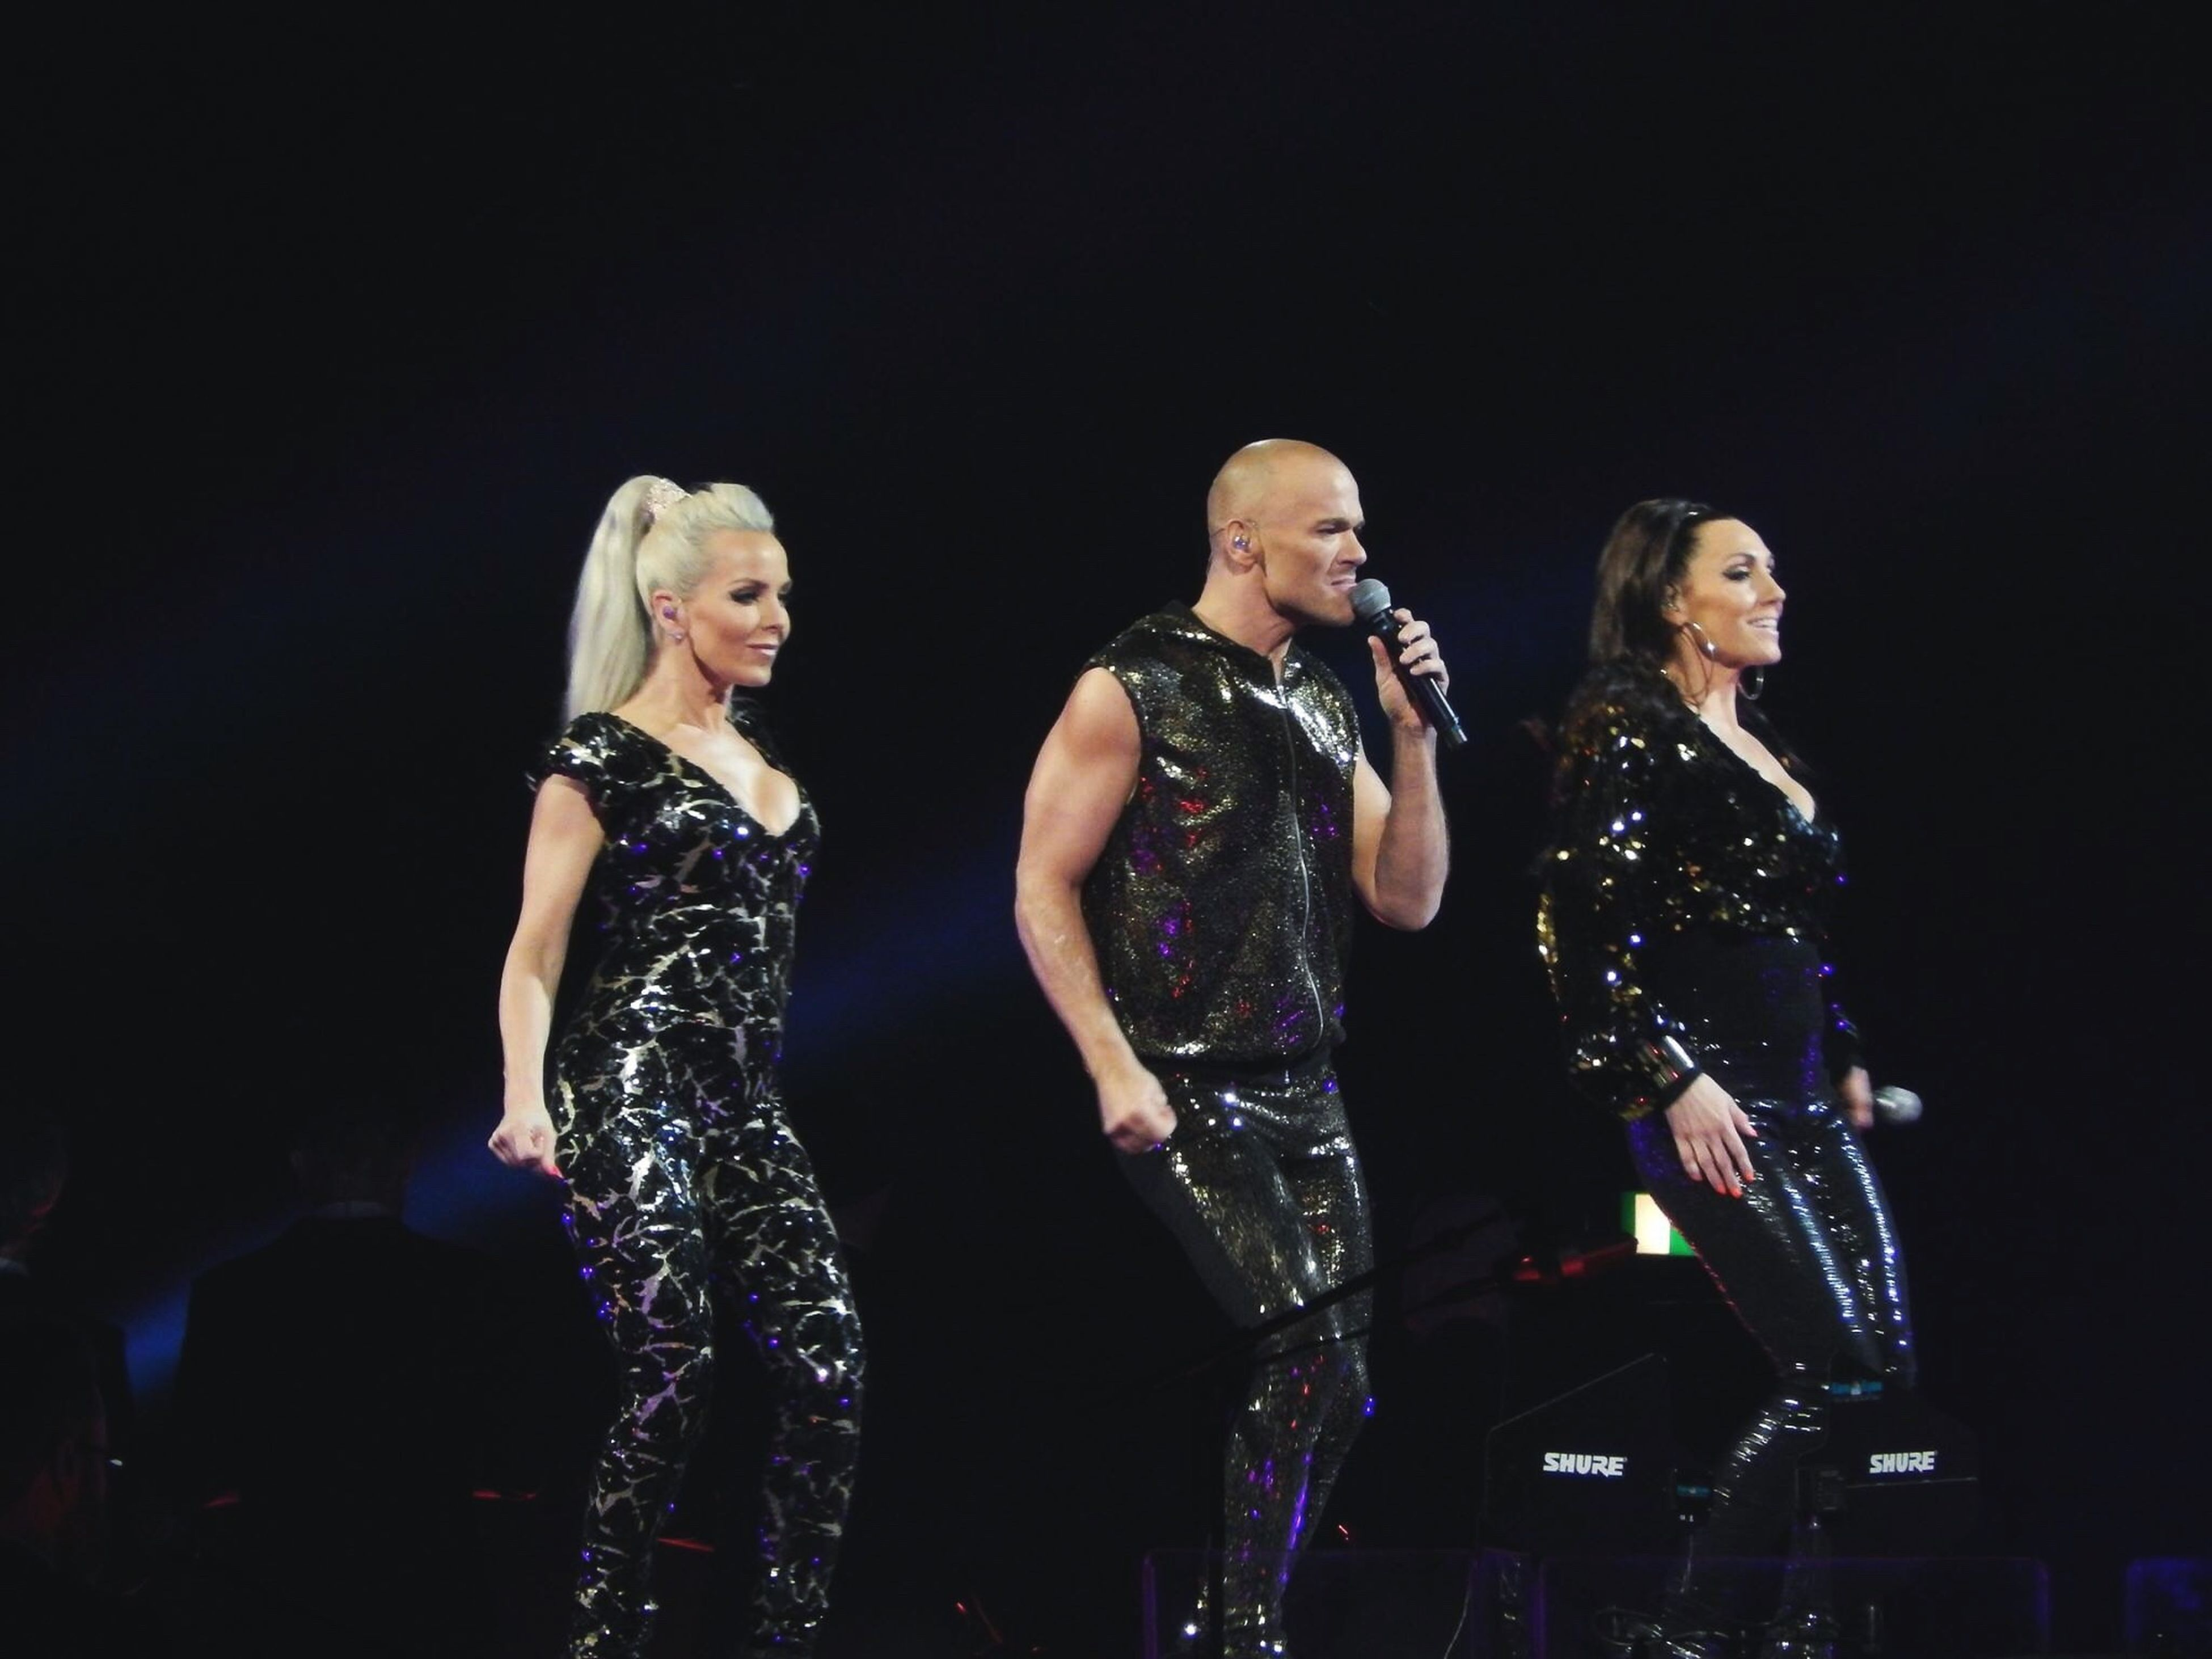 performance, music, stage - performance space, arts culture and entertainment, fame, glamour, blond hair, people, adults only, microphone, singer, performing arts event, singing, young adult, night, stage light, illuminated, nightlife, musician, adult